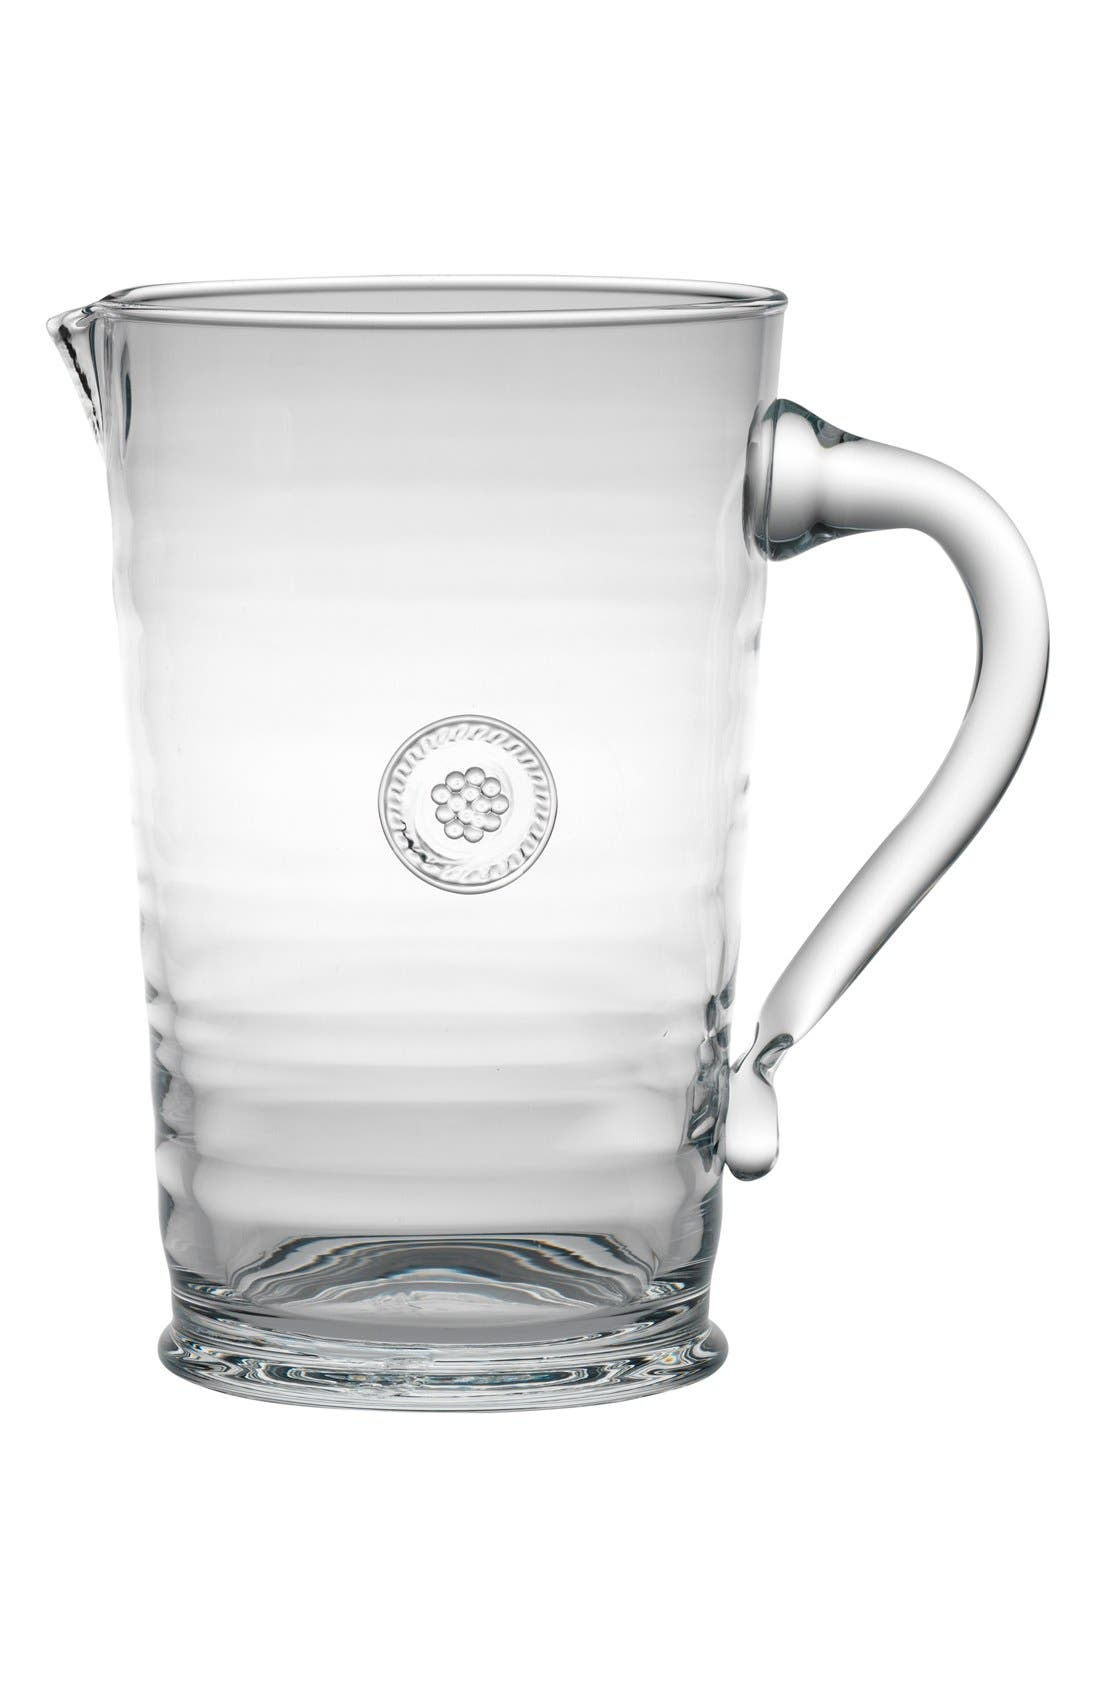 Berry & Thread Glass Pitcher,                             Main thumbnail 1, color,                             CLEAR